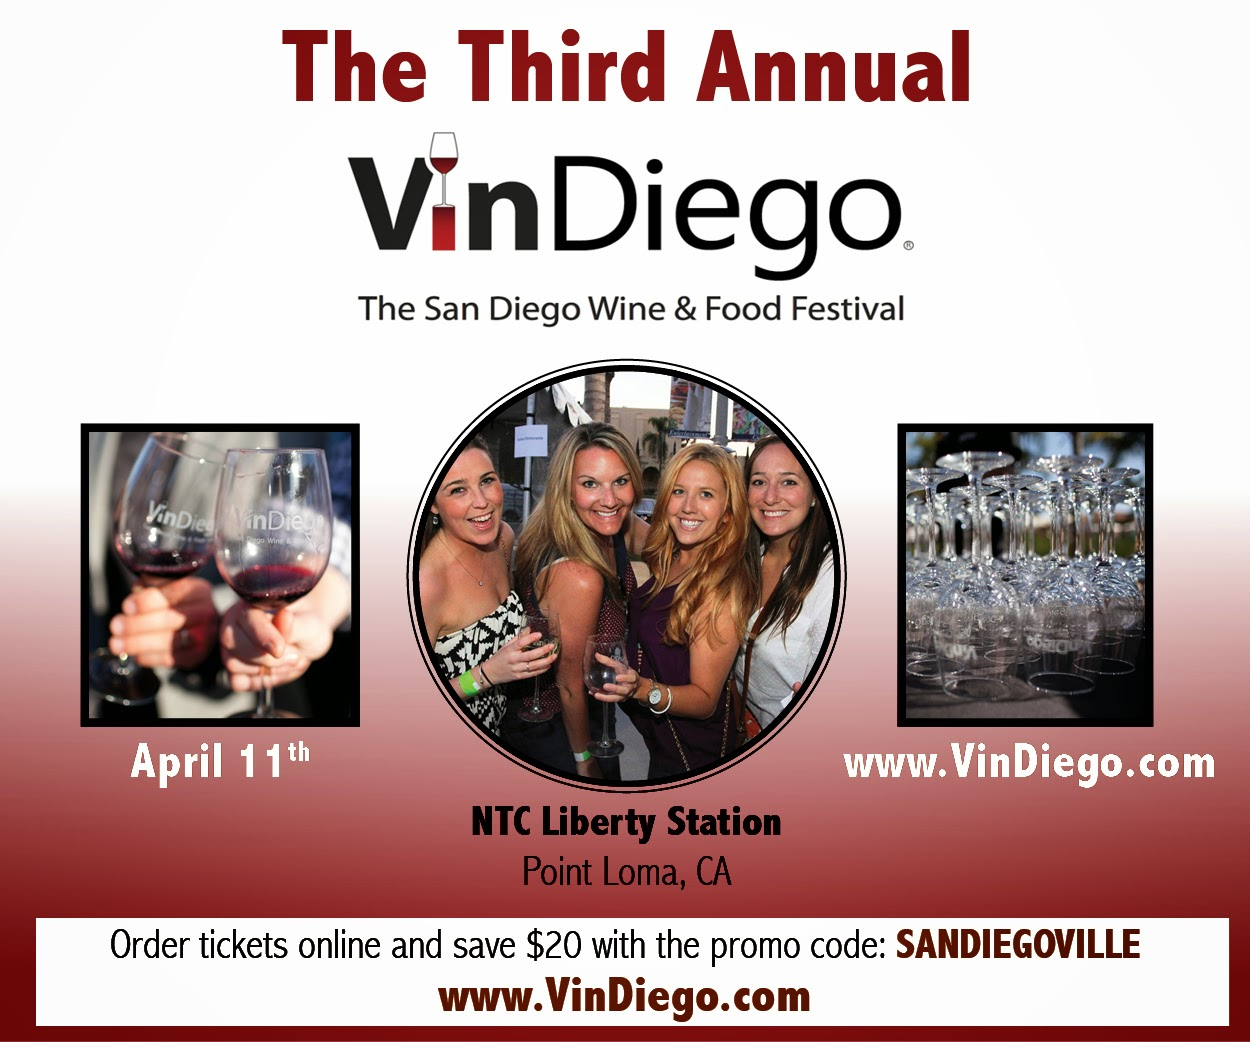 Save $20 on VinDiego Tickets!